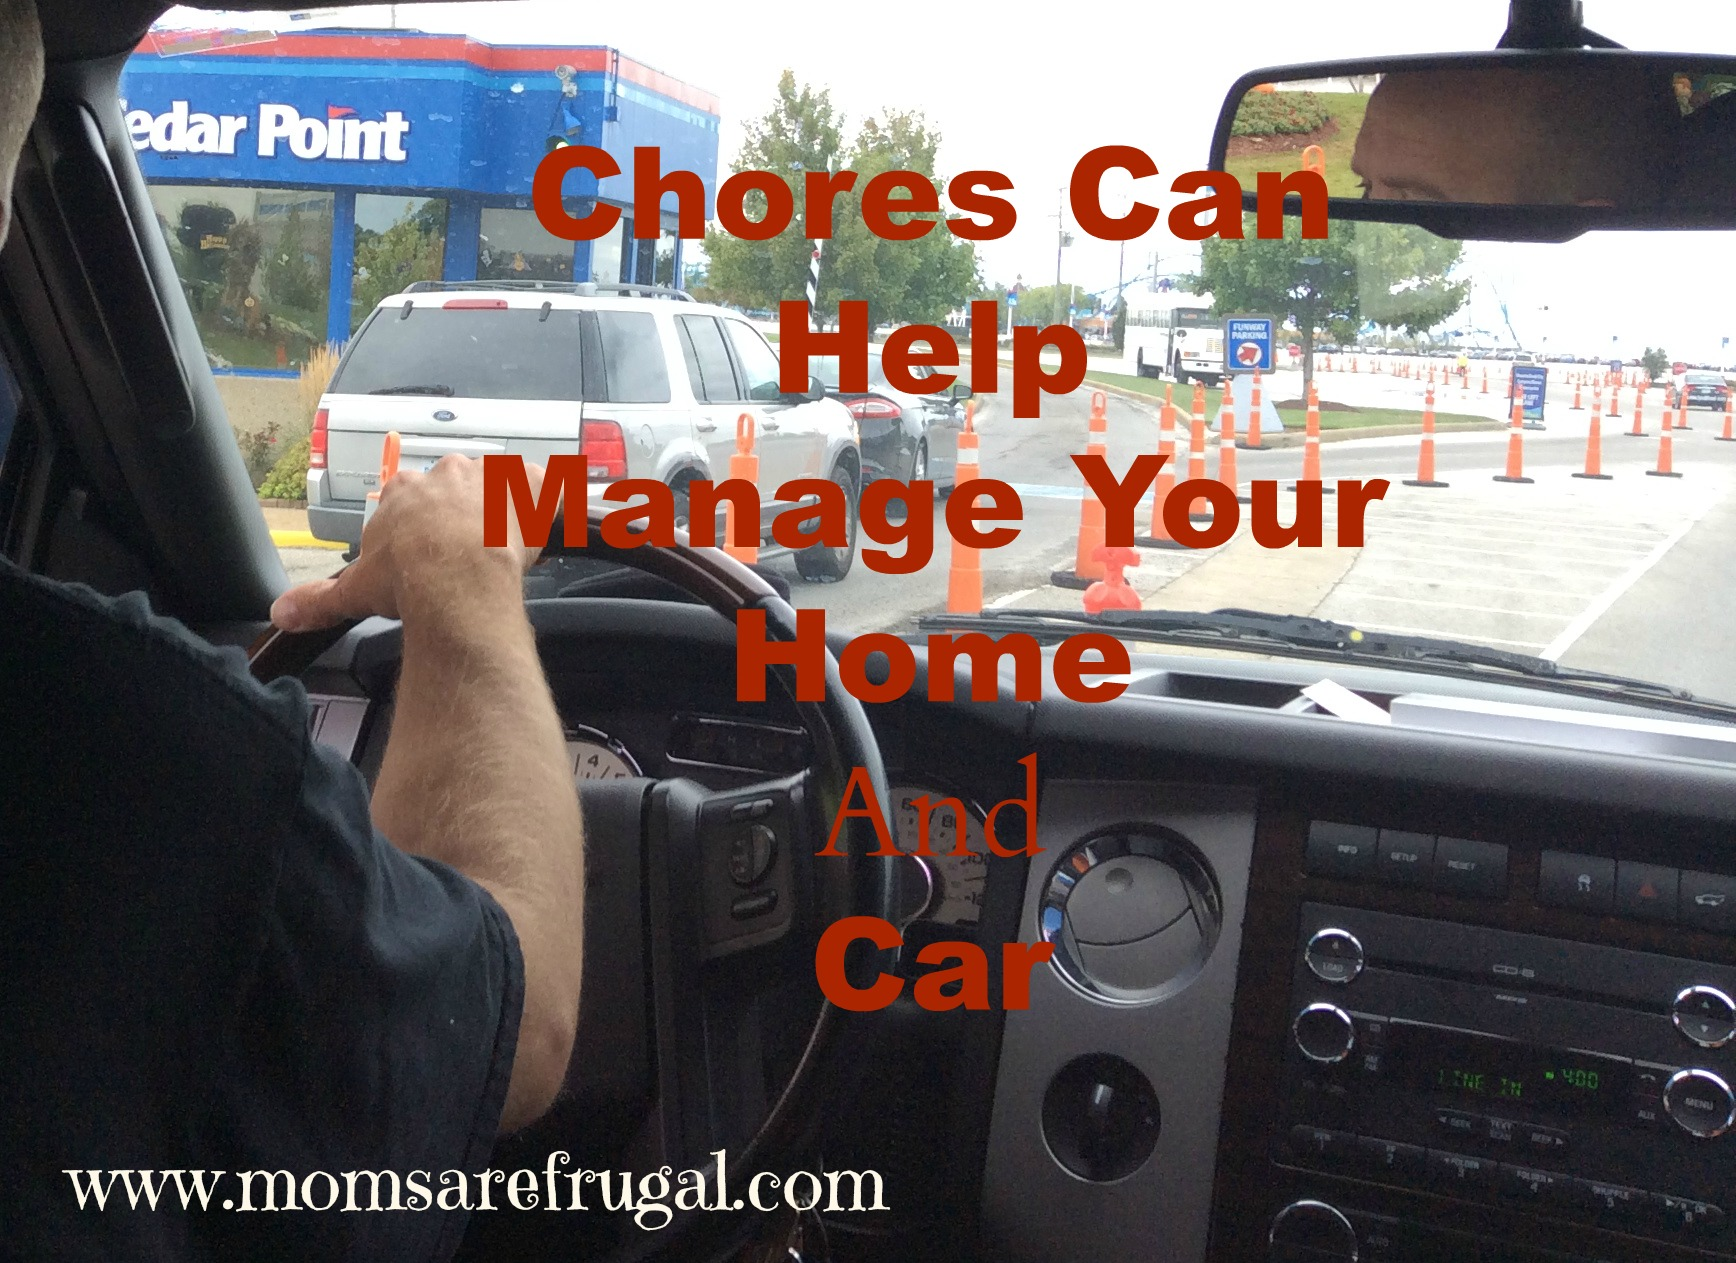 chores help manage car and home